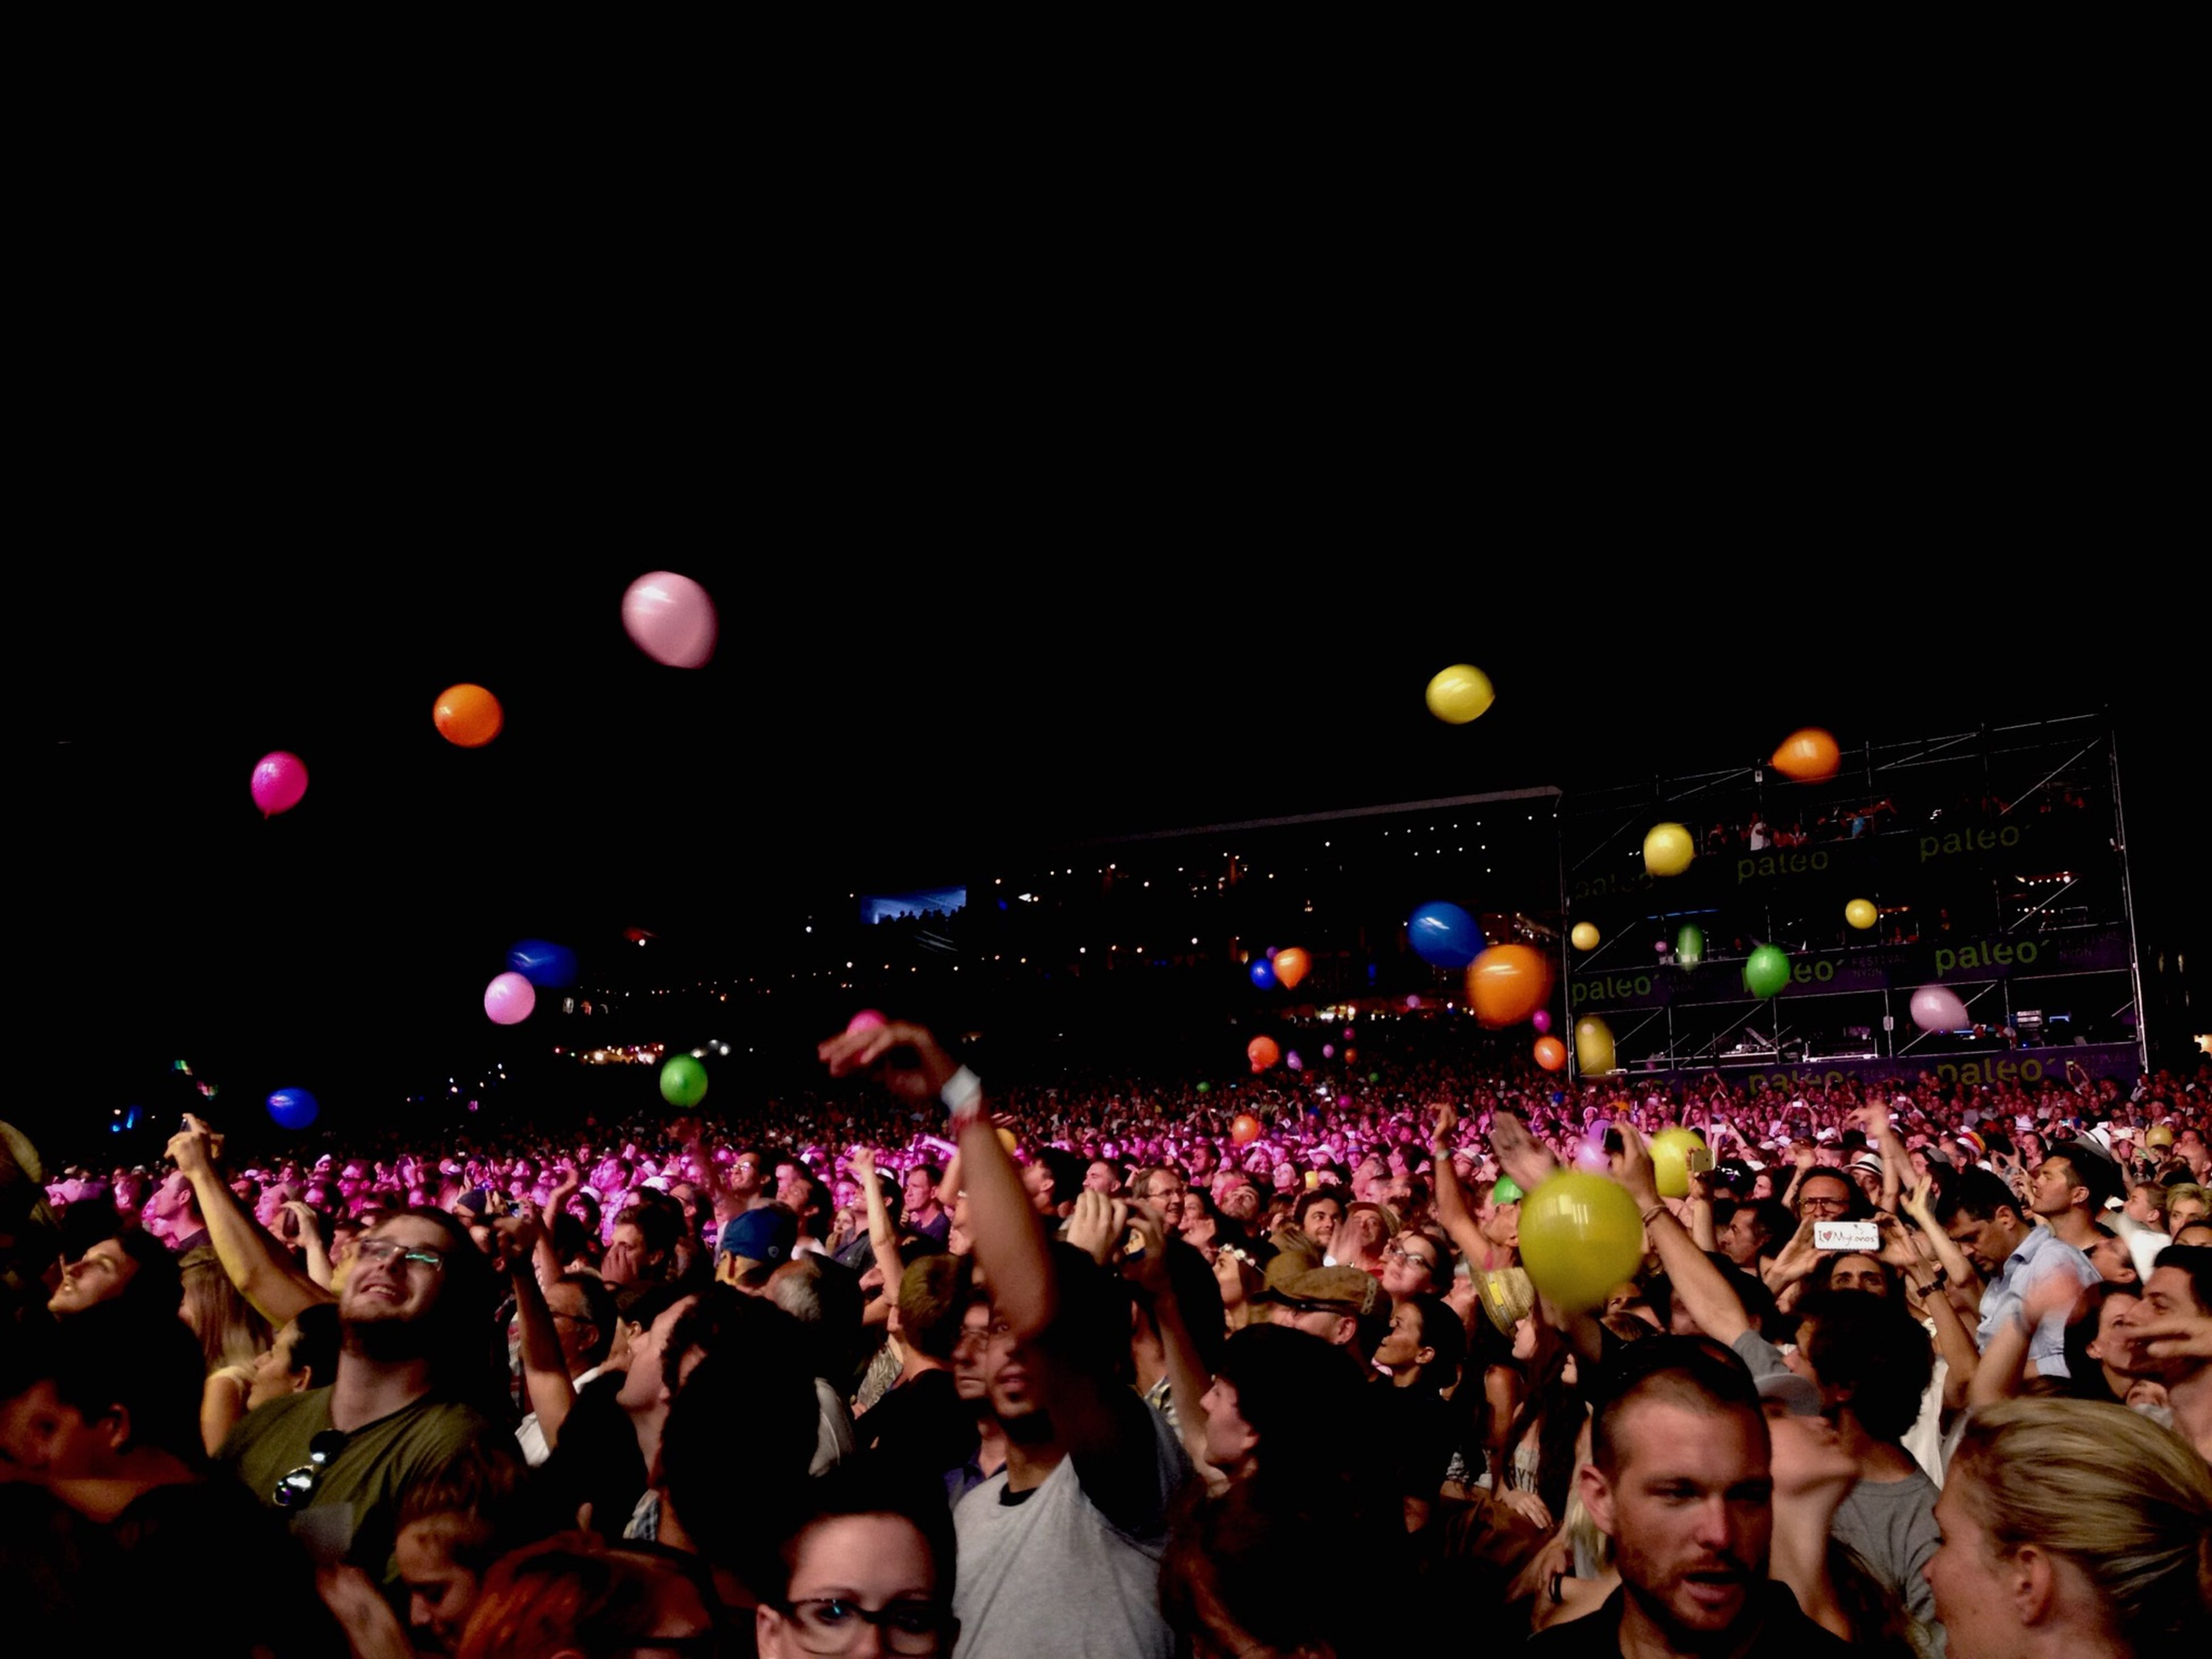 large group of people, crowd, illuminated, night, lifestyles, leisure activity, person, celebration, enjoyment, men, arts culture and entertainment, fun, event, music, performance, music festival, lighting equipment, togetherness